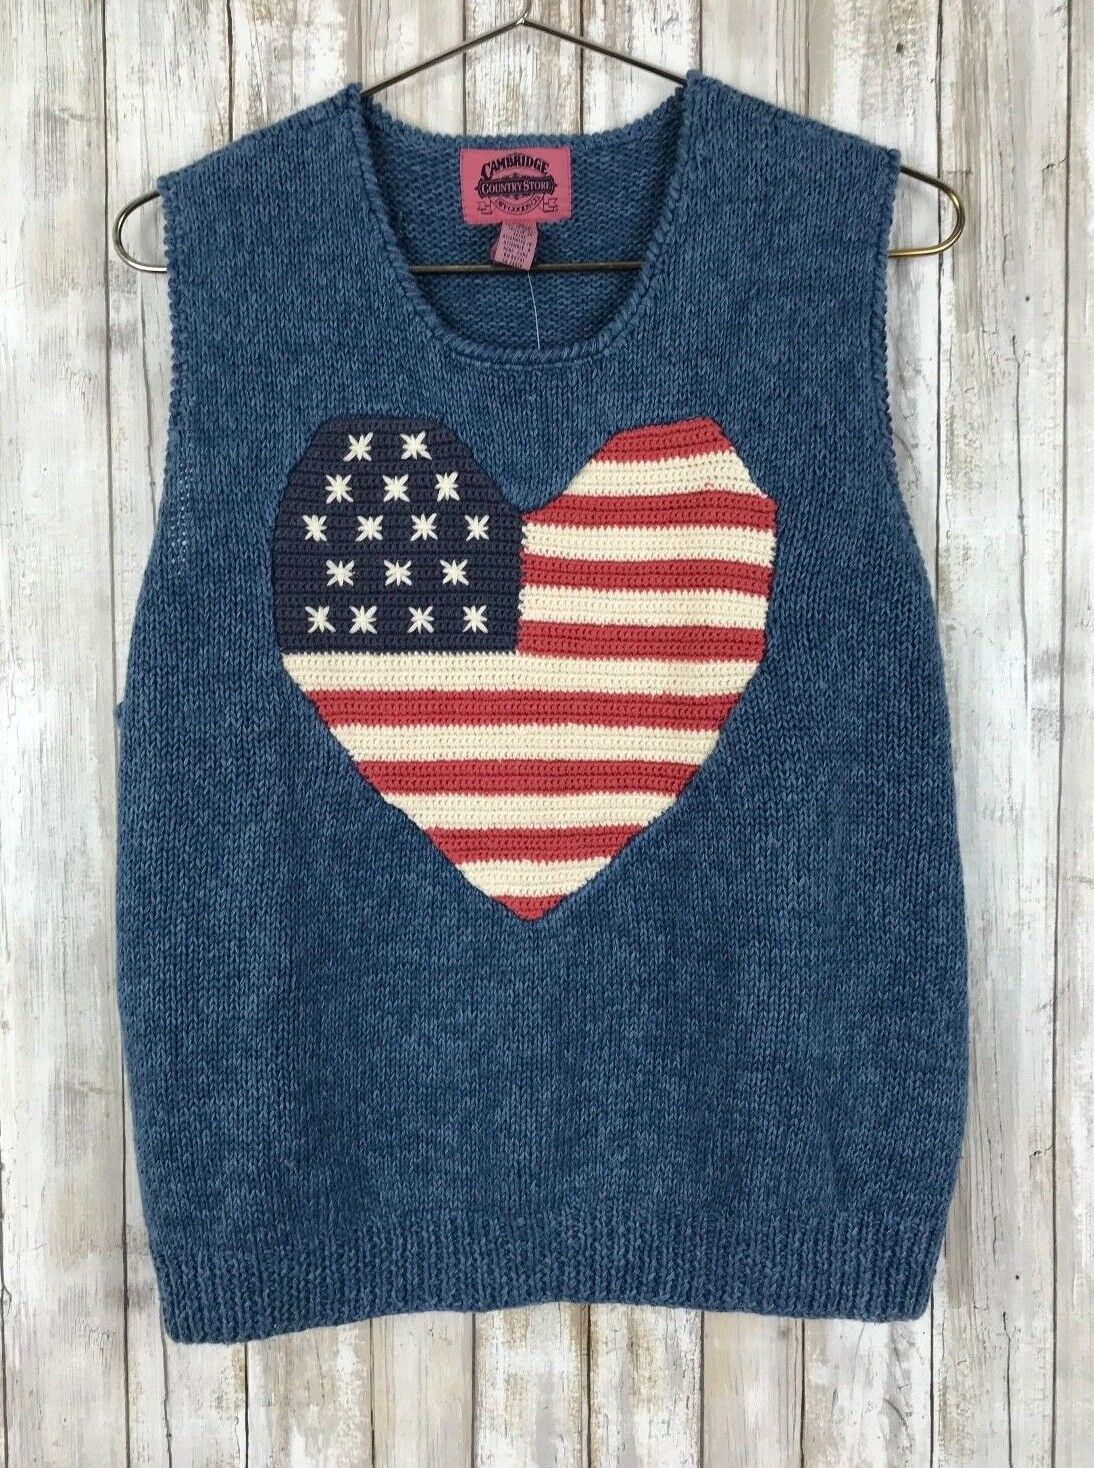 1995 Cambridge Dry Goods bluee American Heart Stripe Knit Sweater L Large NEW